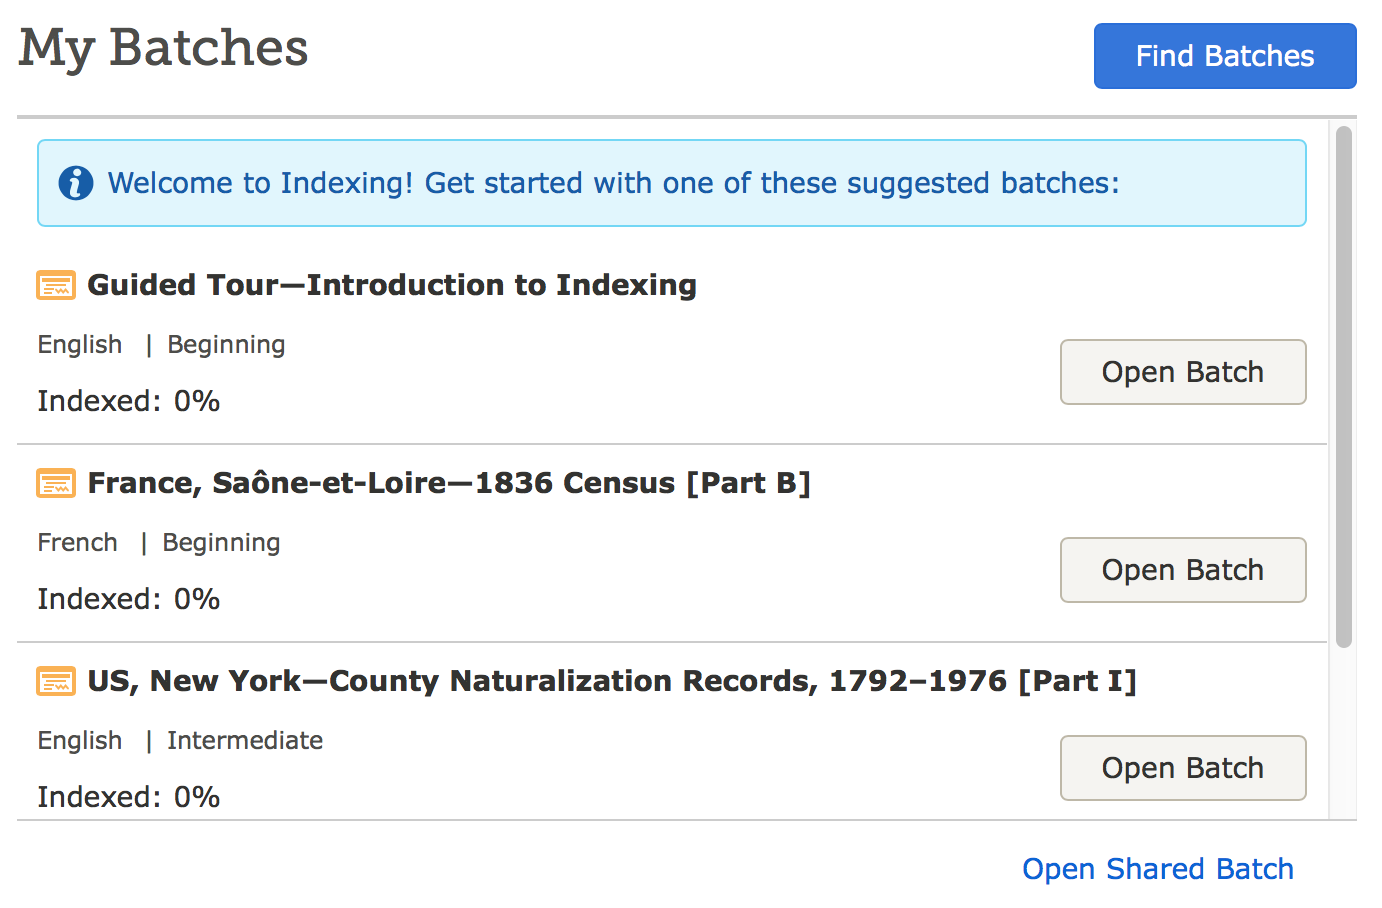 This guided tour can help you get started with indexing.